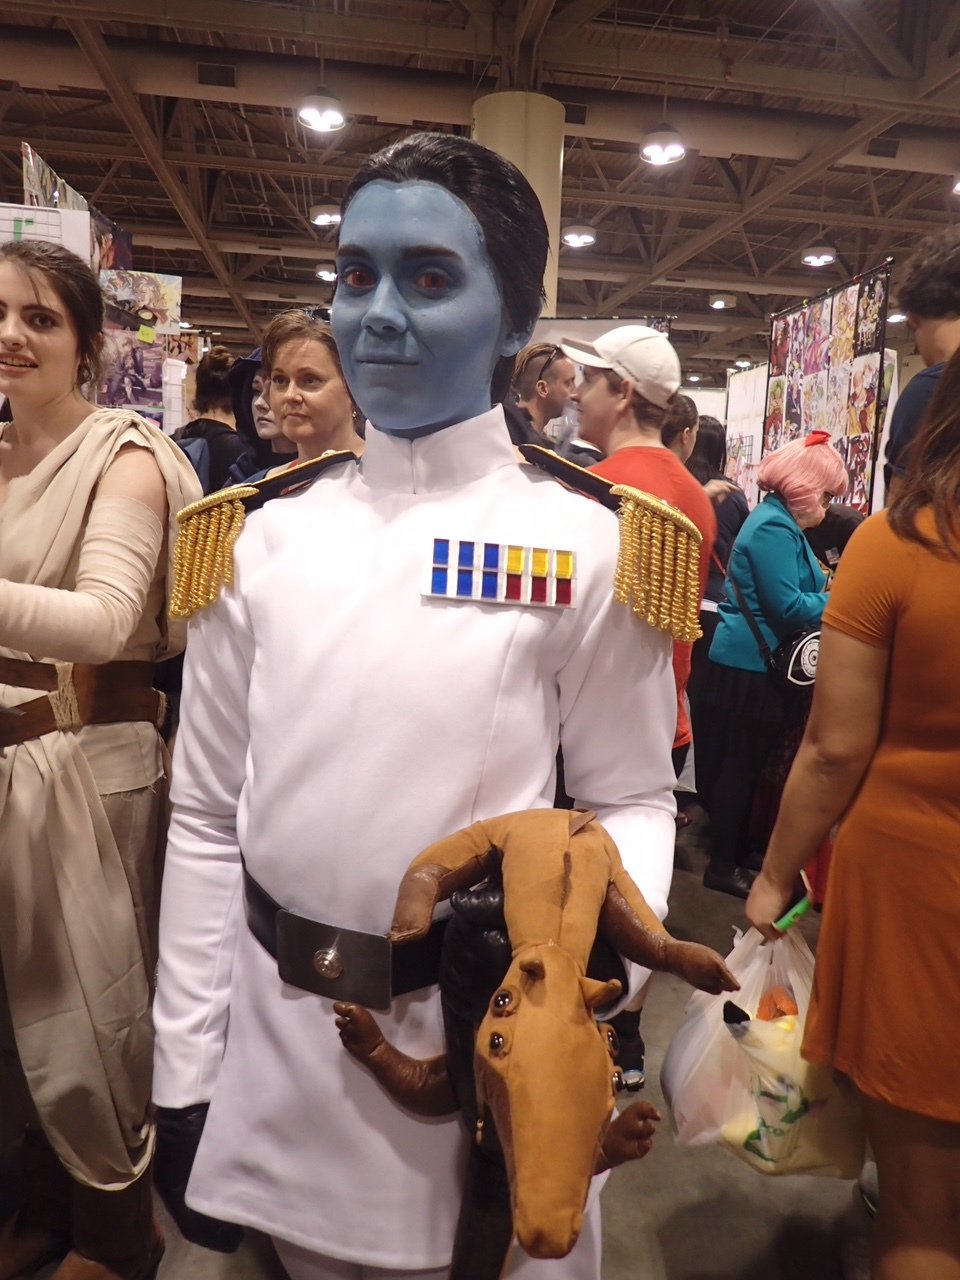 A delightful Grand Admiral Thrawn, complete with ysalamiri!